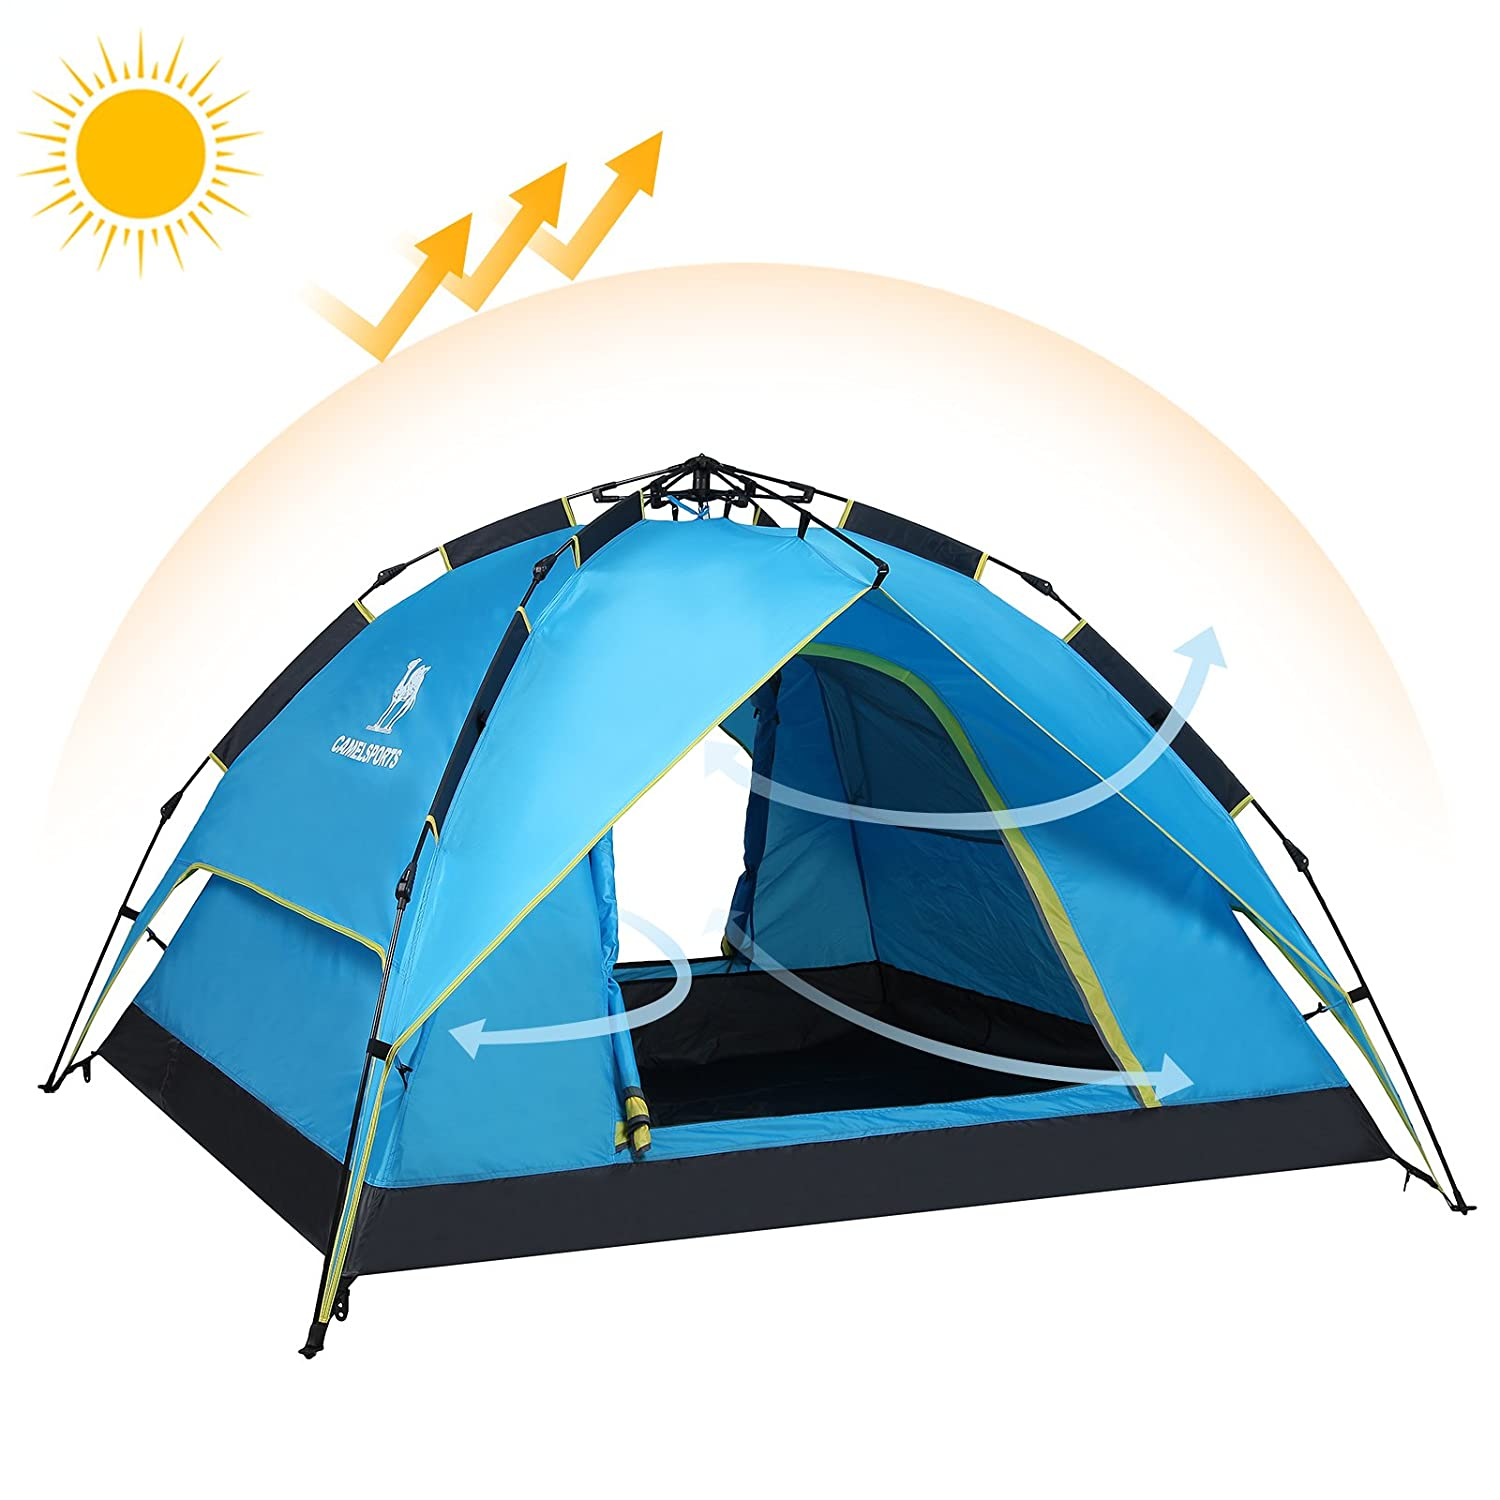 Camel Double Layer Shelter Waterproof Automatic Family Voucer 3second 30 Persen Tent For 2 3 Person Outdoor Hiking Camping Beach Blue Canopies Sports